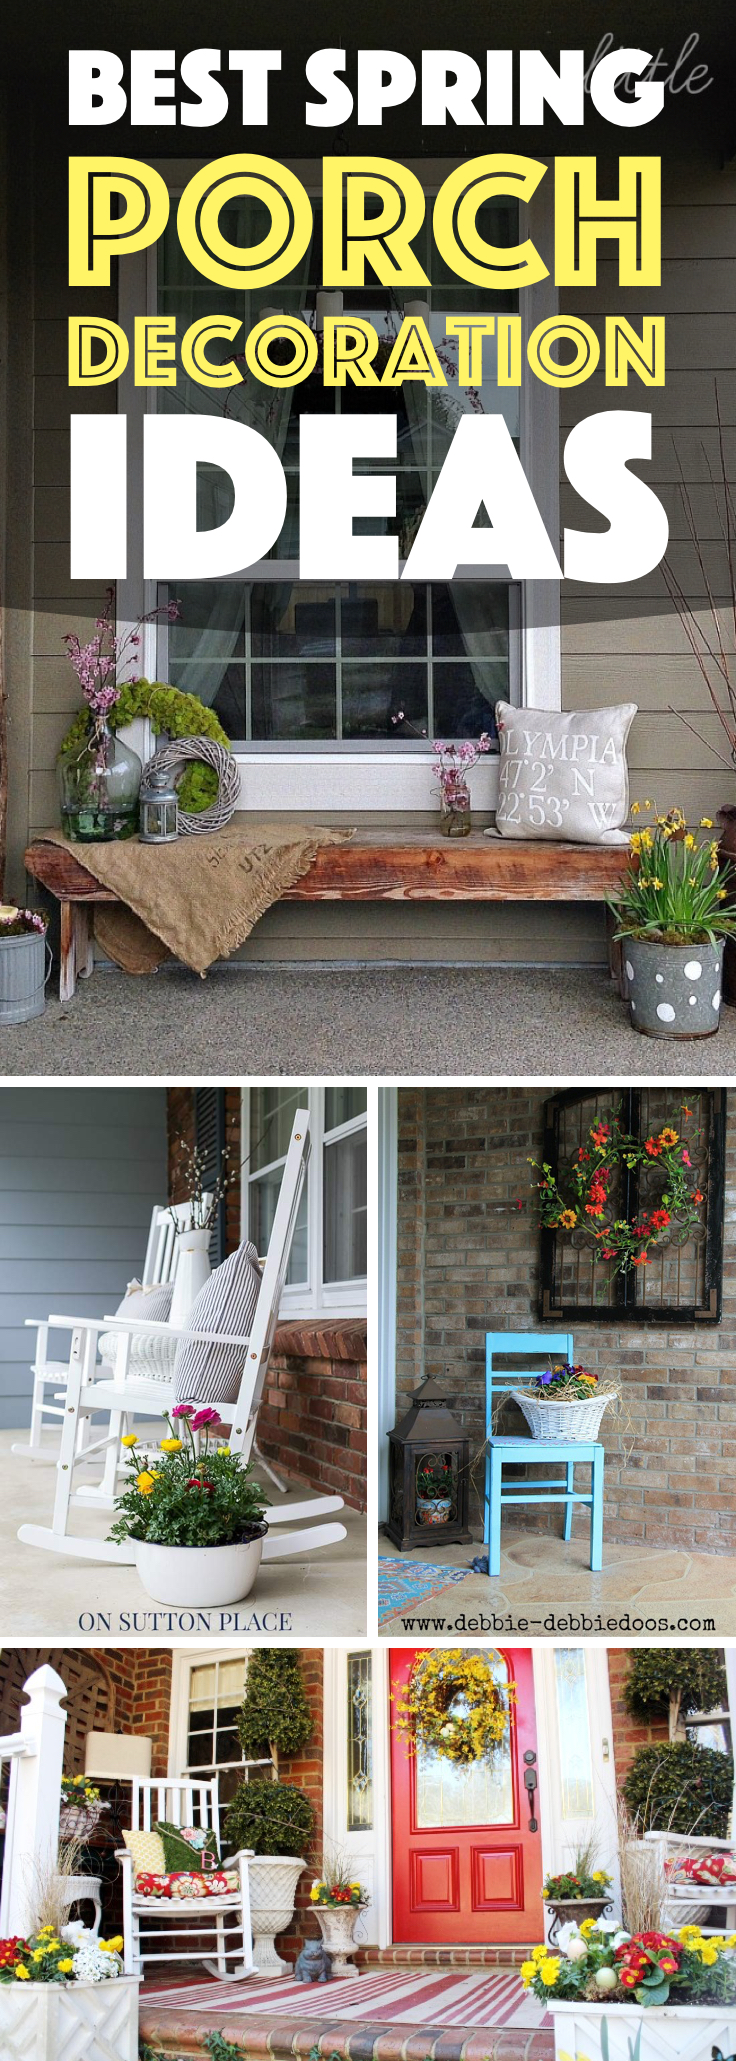 Spring Porch Decoration Ideas